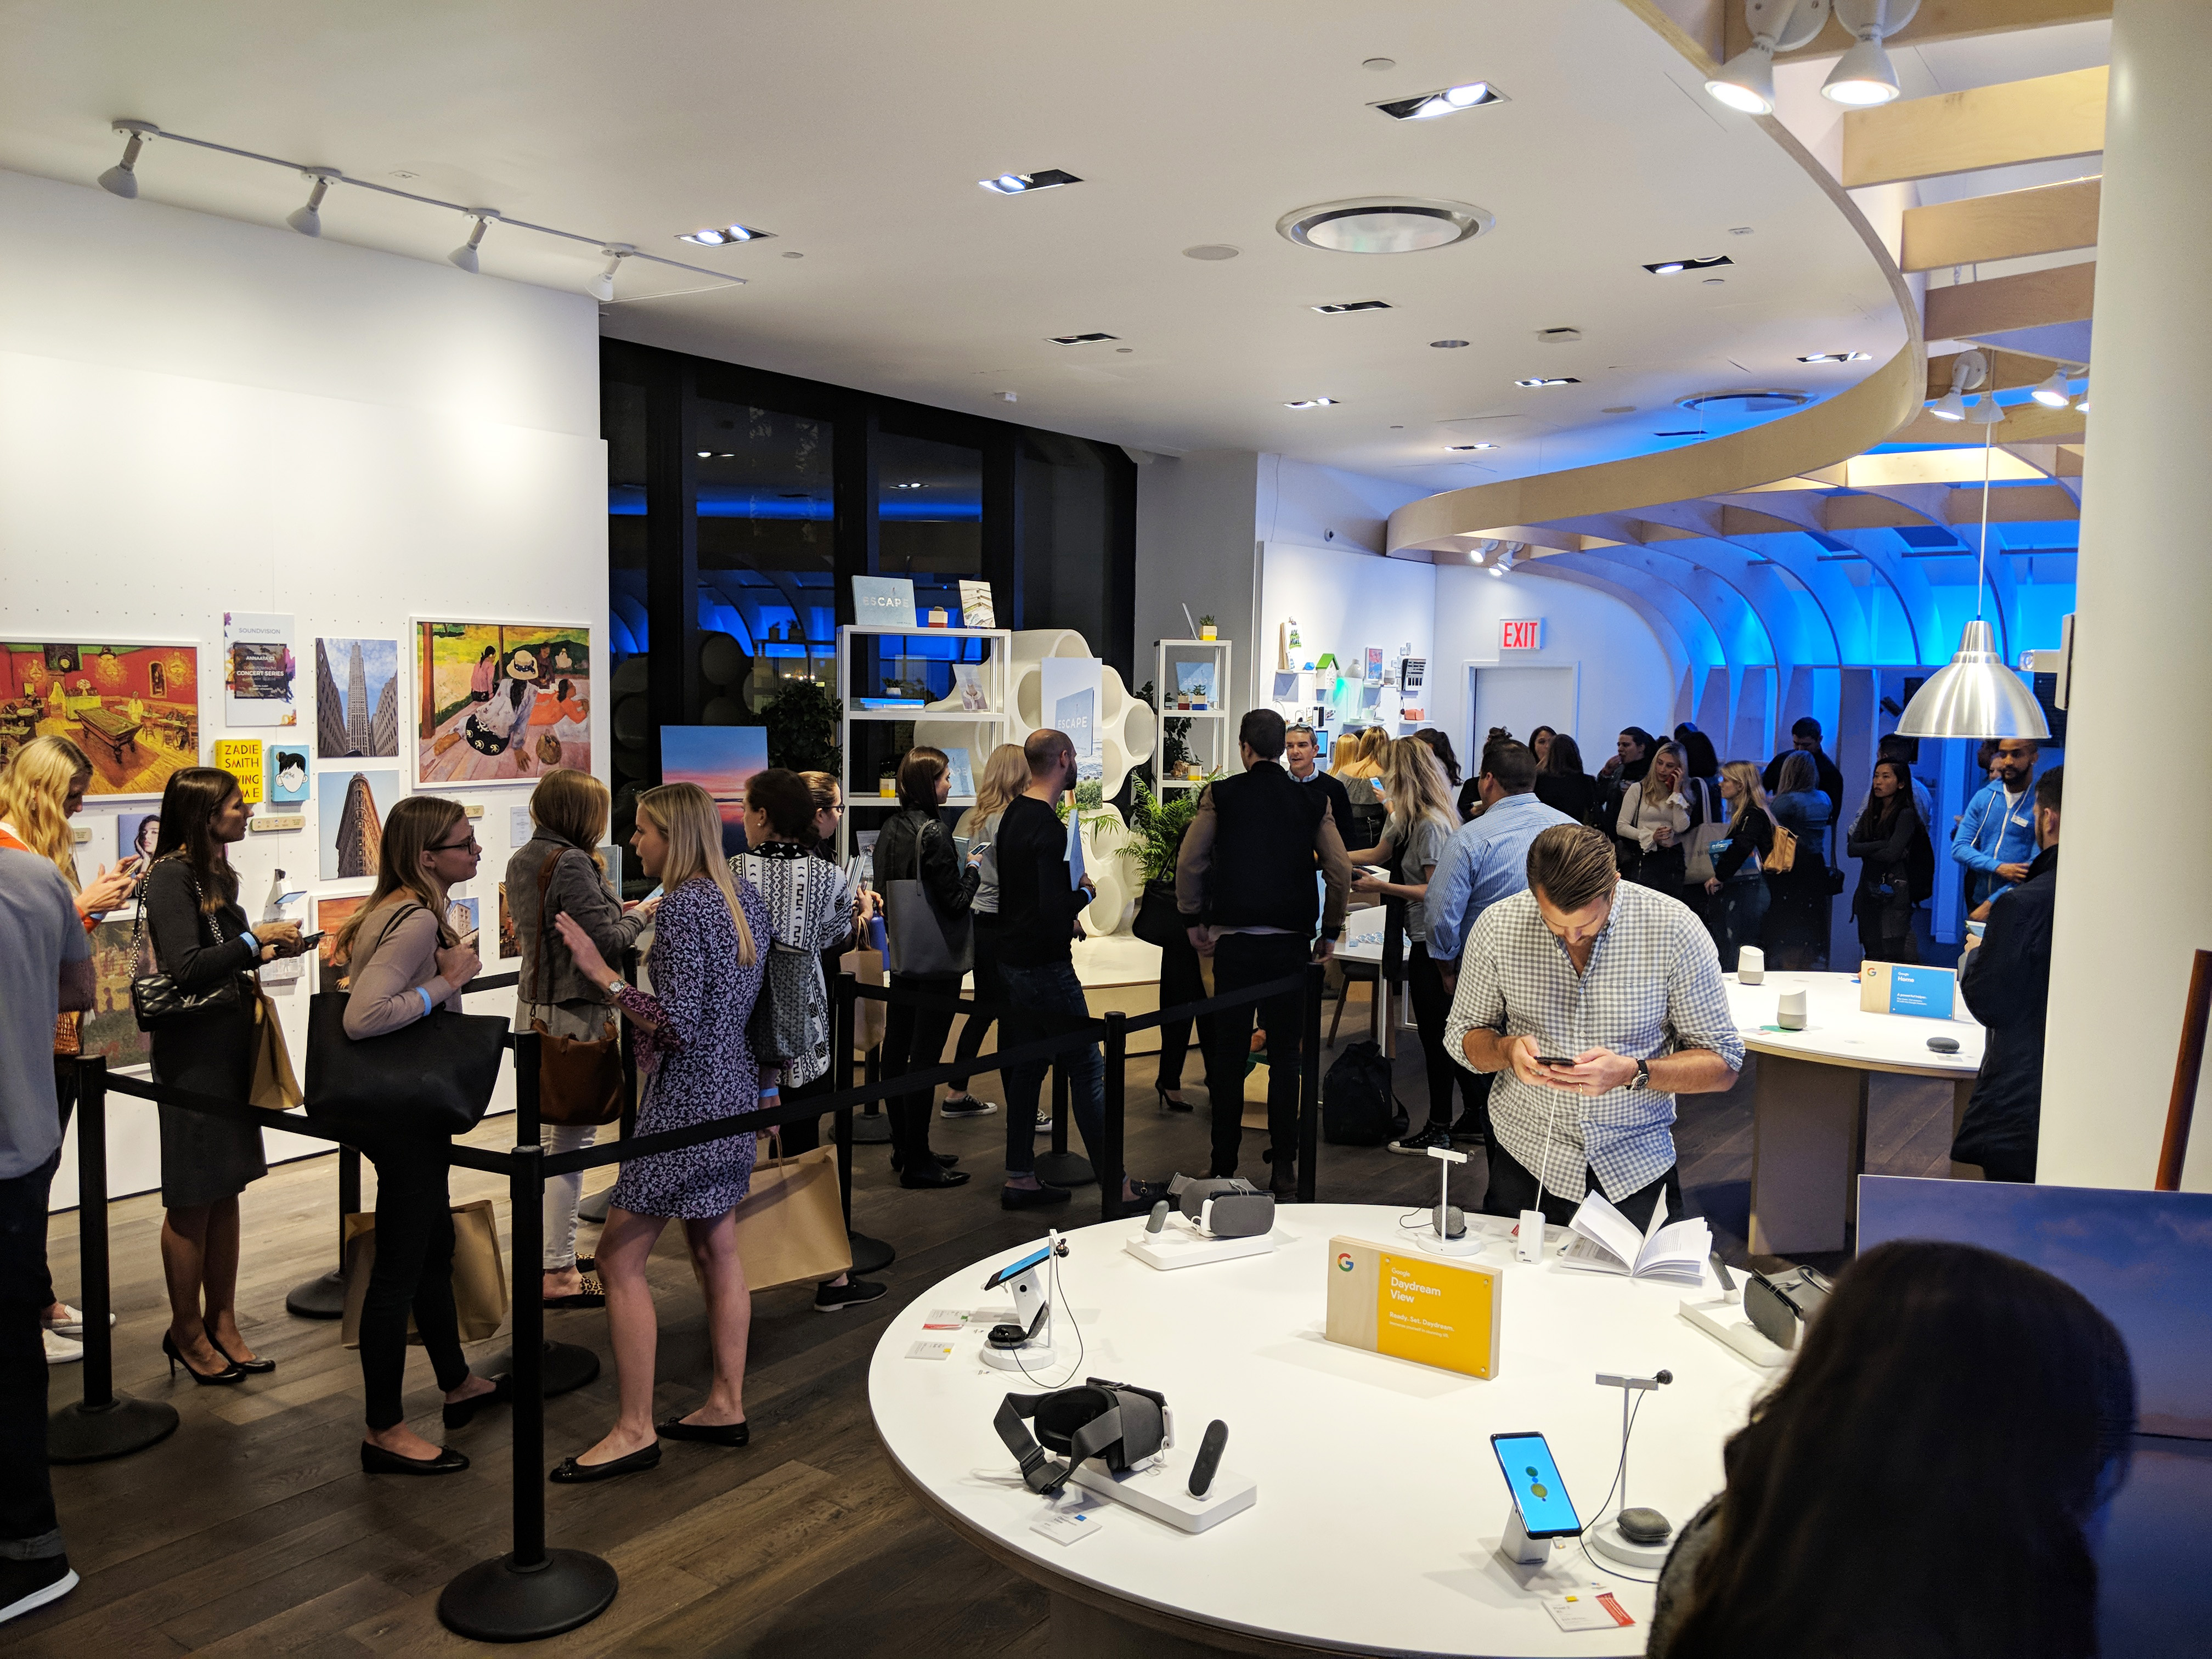 Book signing for Gray Malin at Google Popup Store, Flatiron, Manhattan, 2017